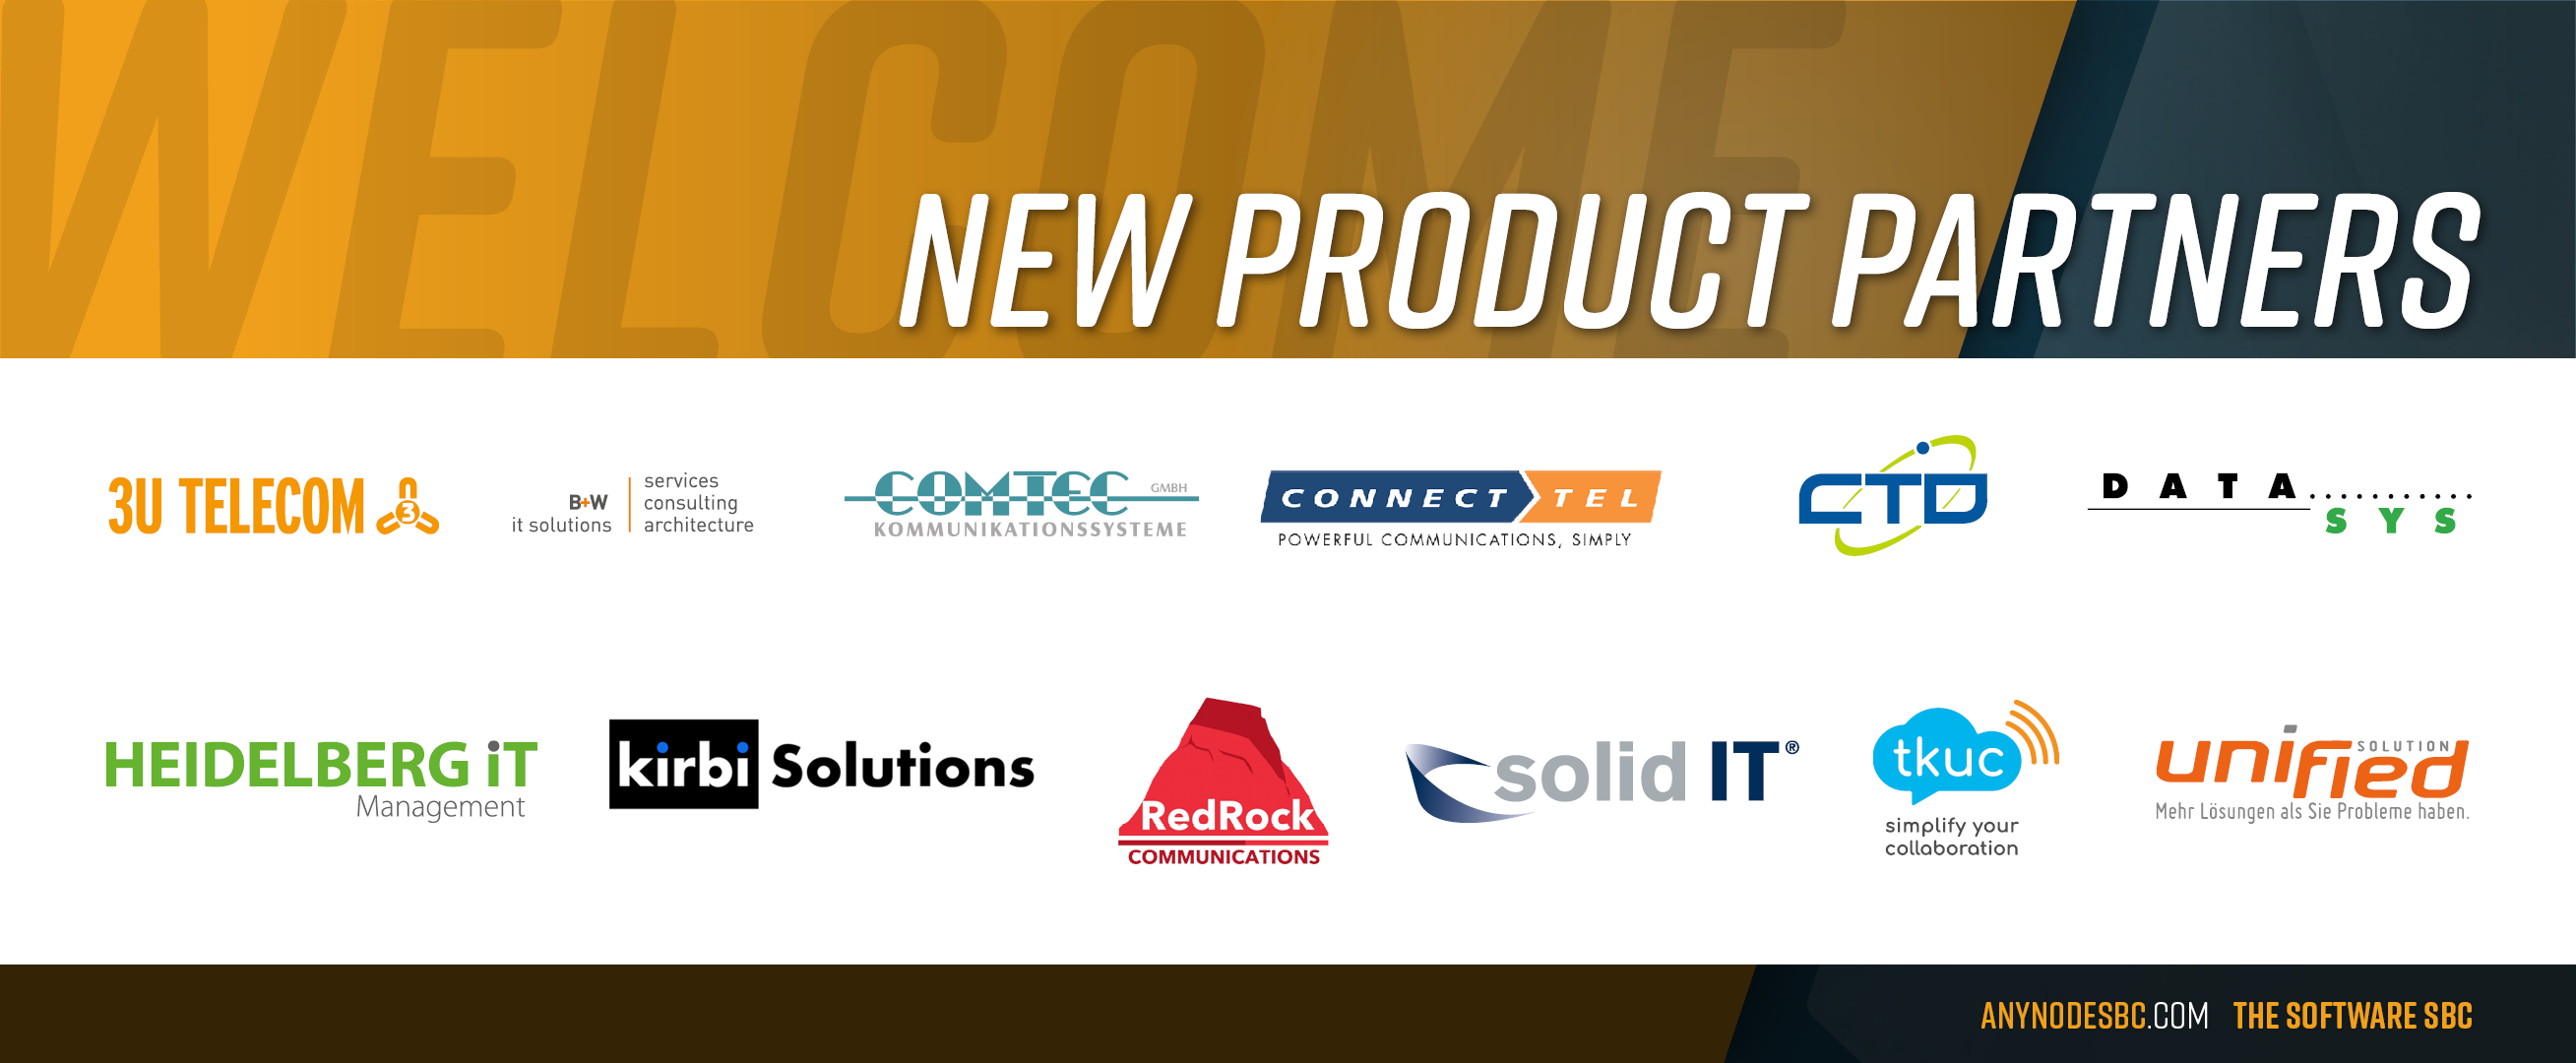 New anynode Product Partners in March 2021!